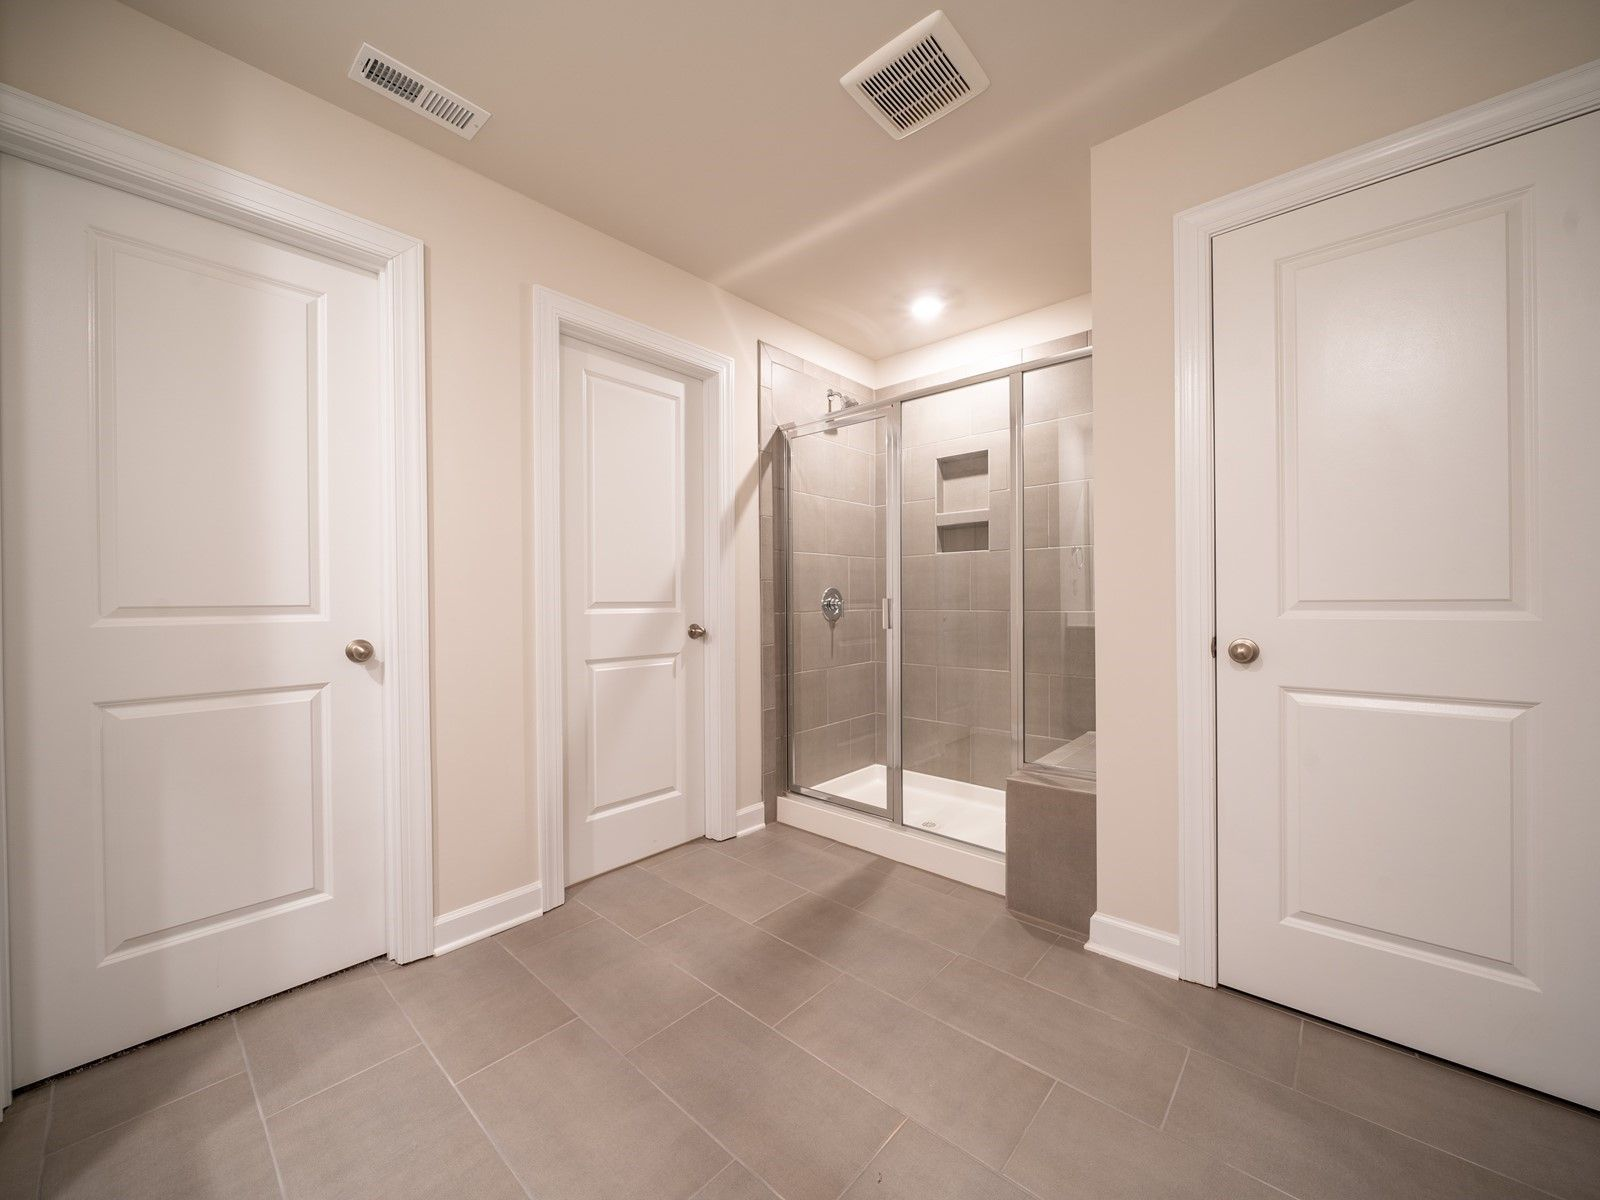 Bathroom featured in the Johnson By Meritage Homes in Charlotte, NC